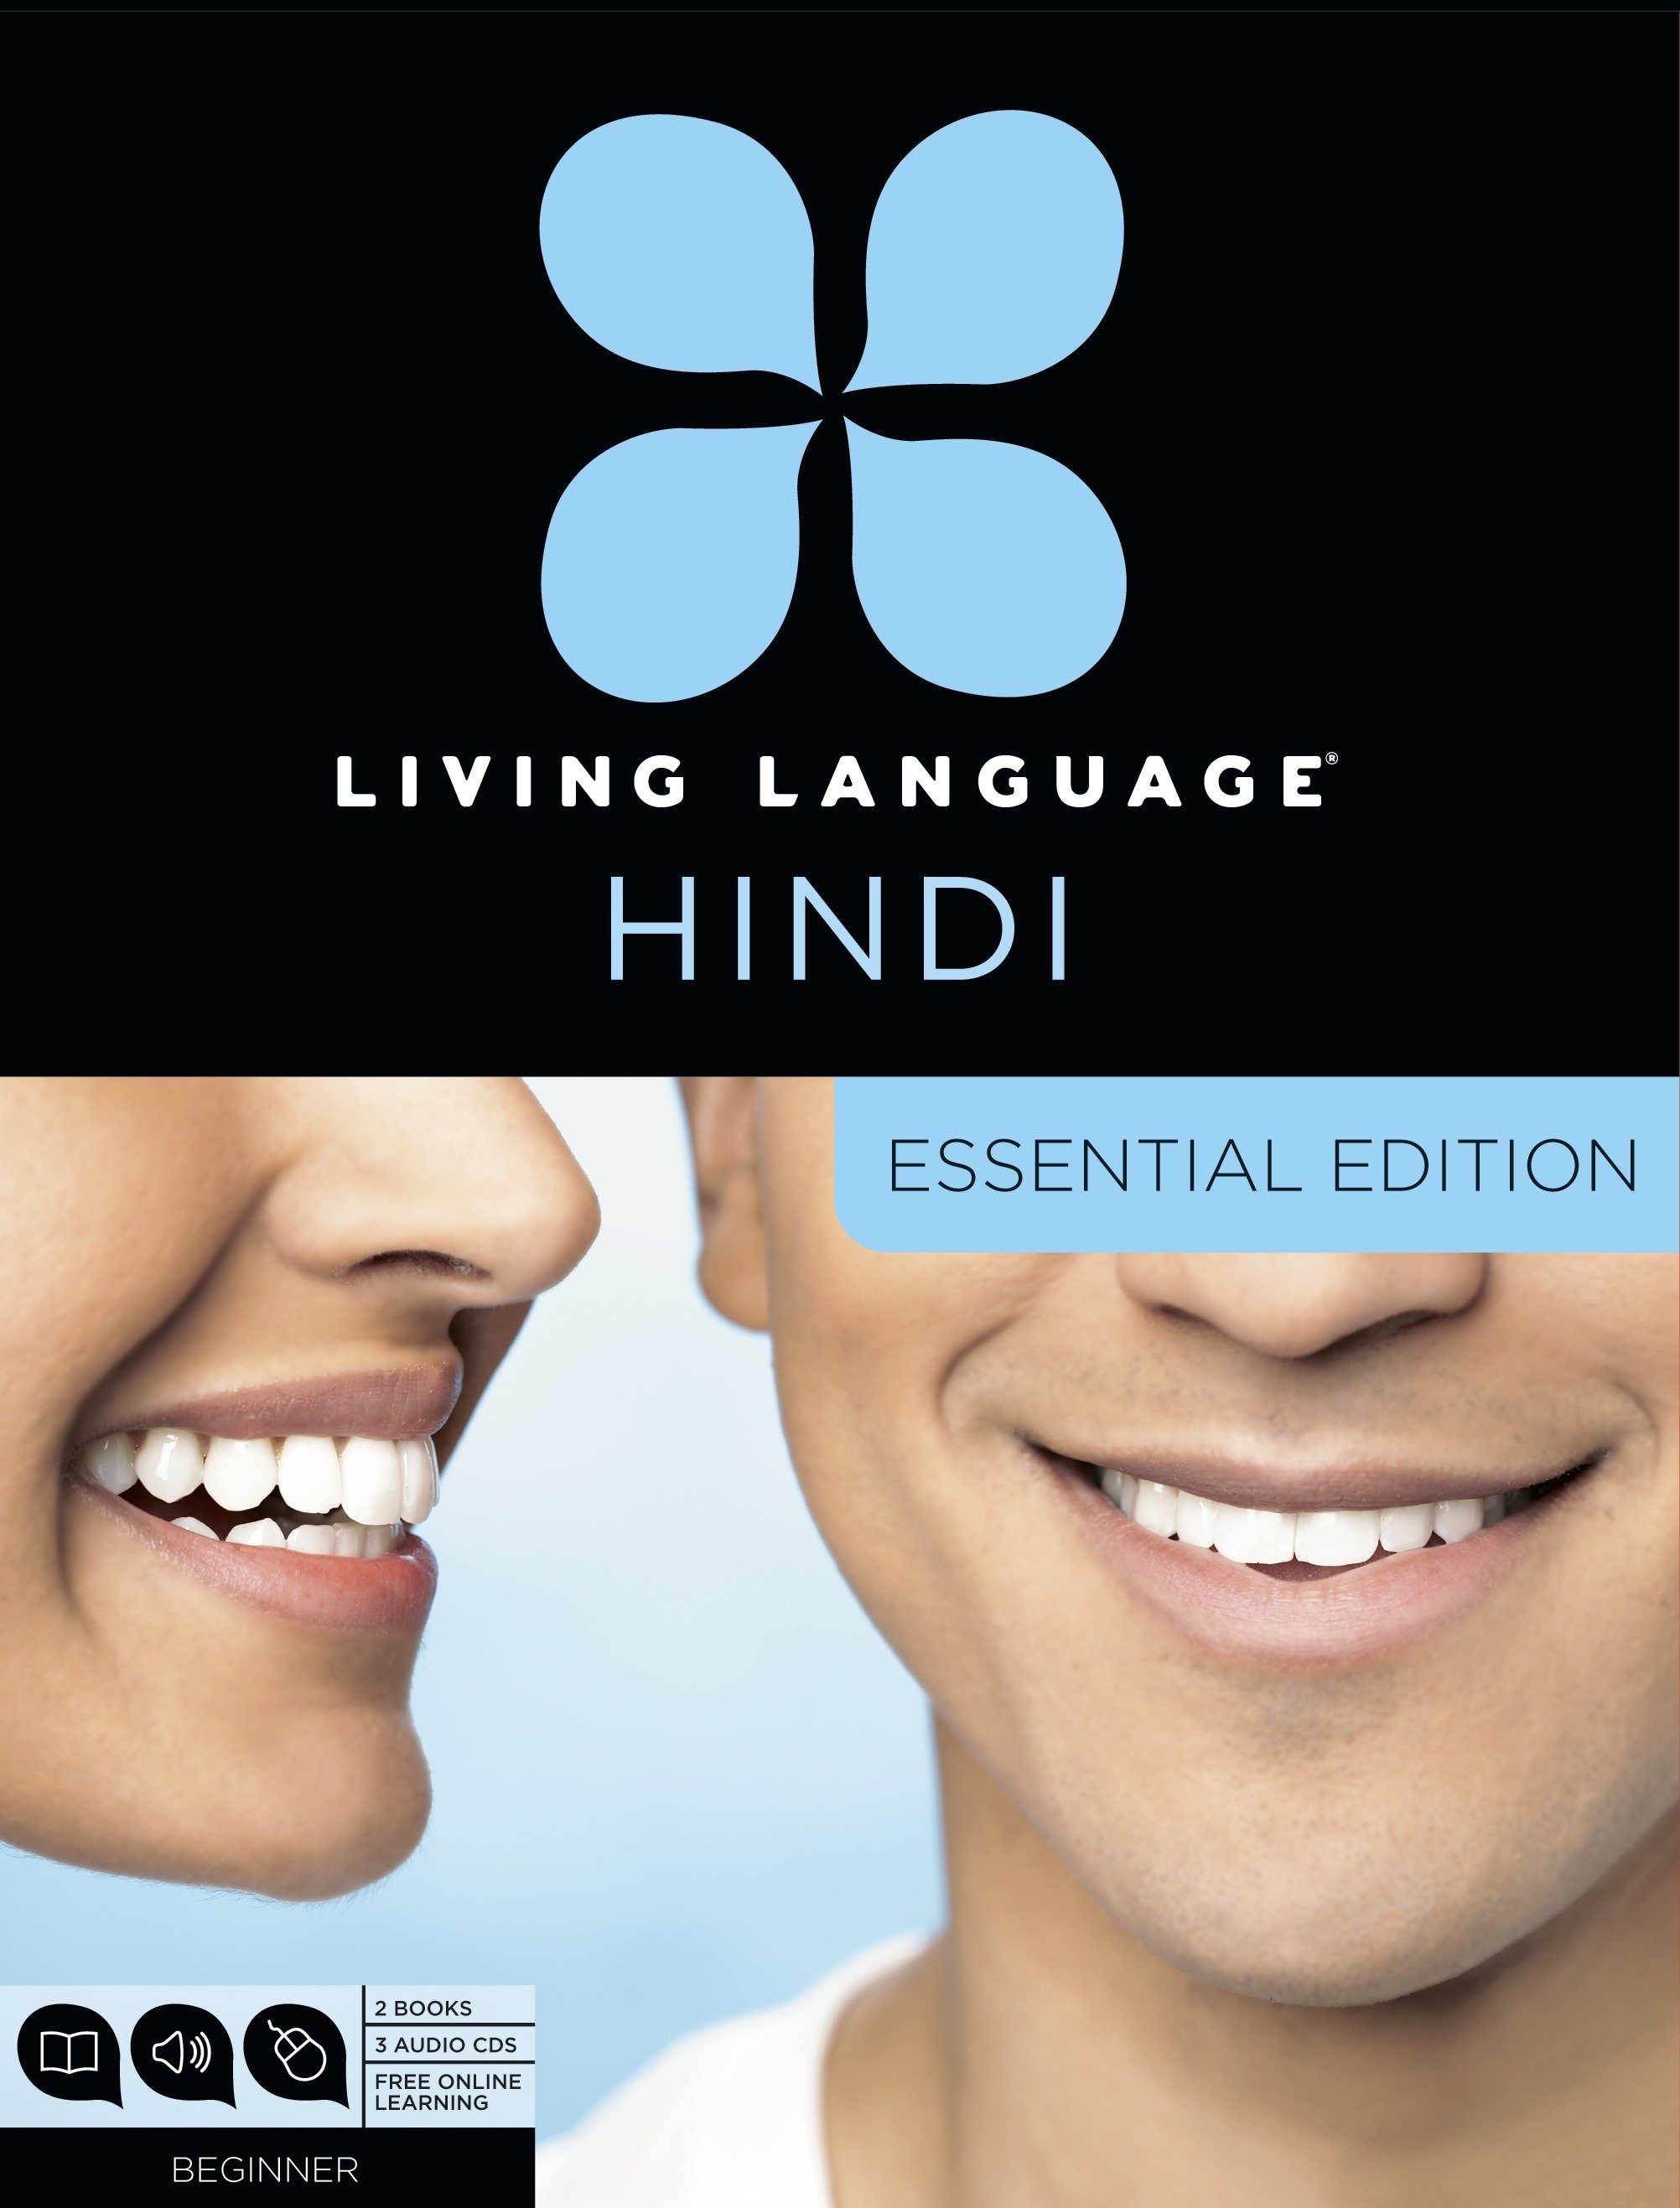 Living Language Hindi Essential Edition Beginner Course Including Coursebook 3 Audio Cds